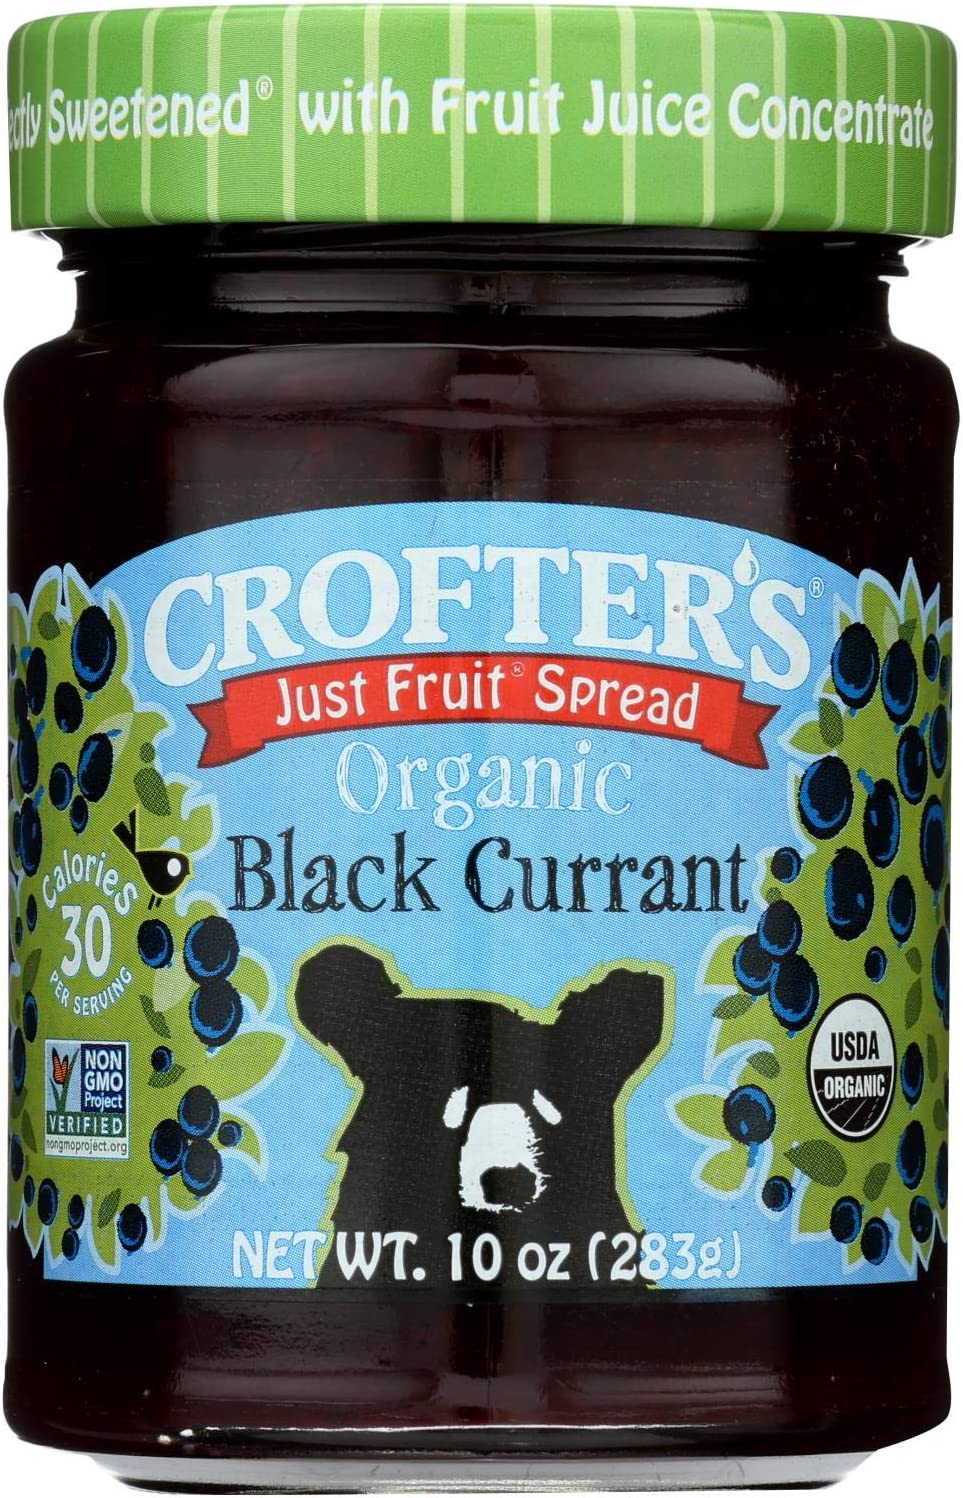 Sale SALE% OFF Crofters Fees free Fruit Spread - Organic Currant Black 1 Just